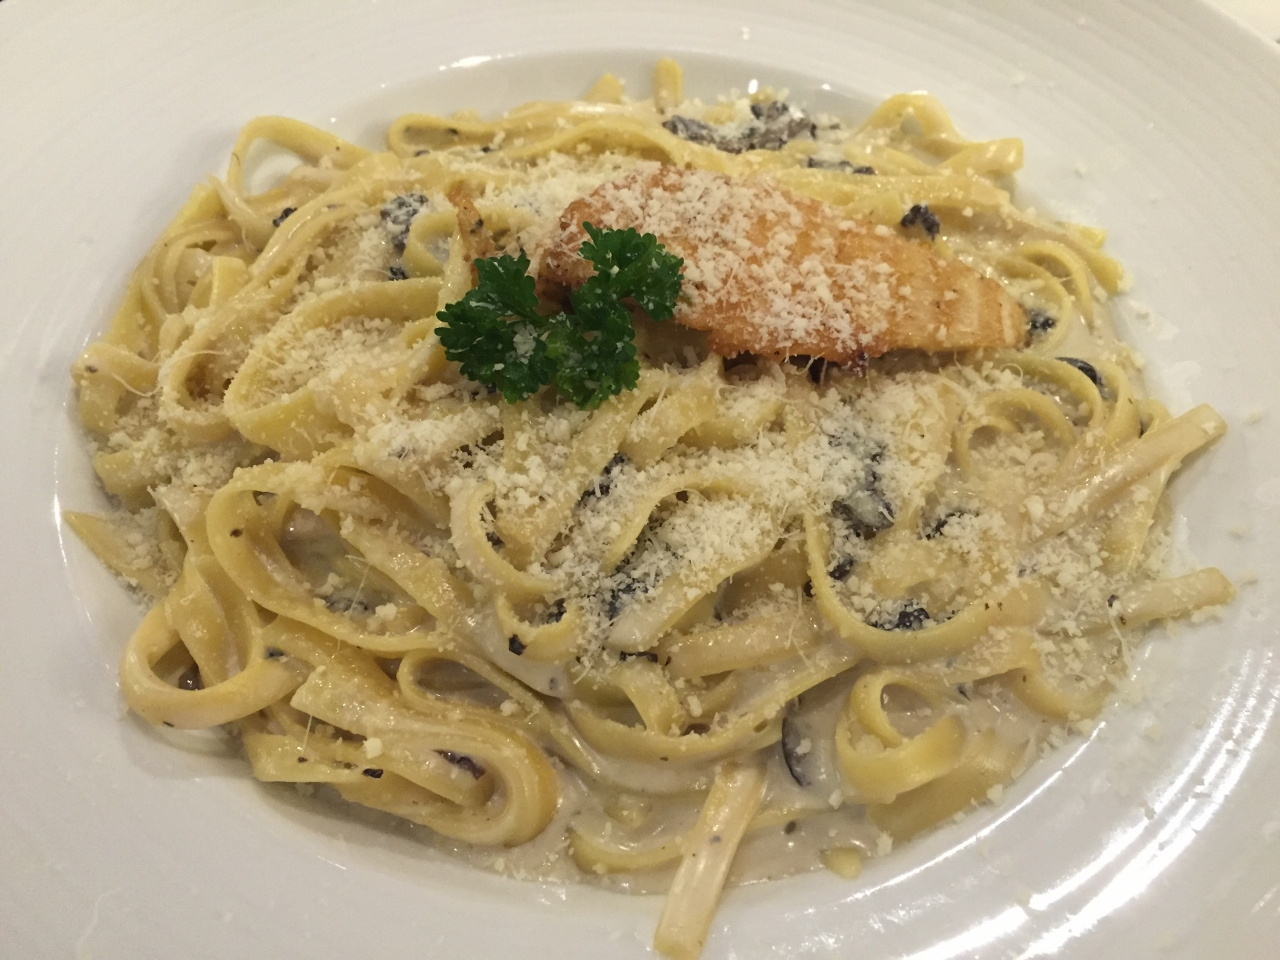 Fettucine pasta with chicken is one of the popular main courses you might find on the Carnival Spirit menu.